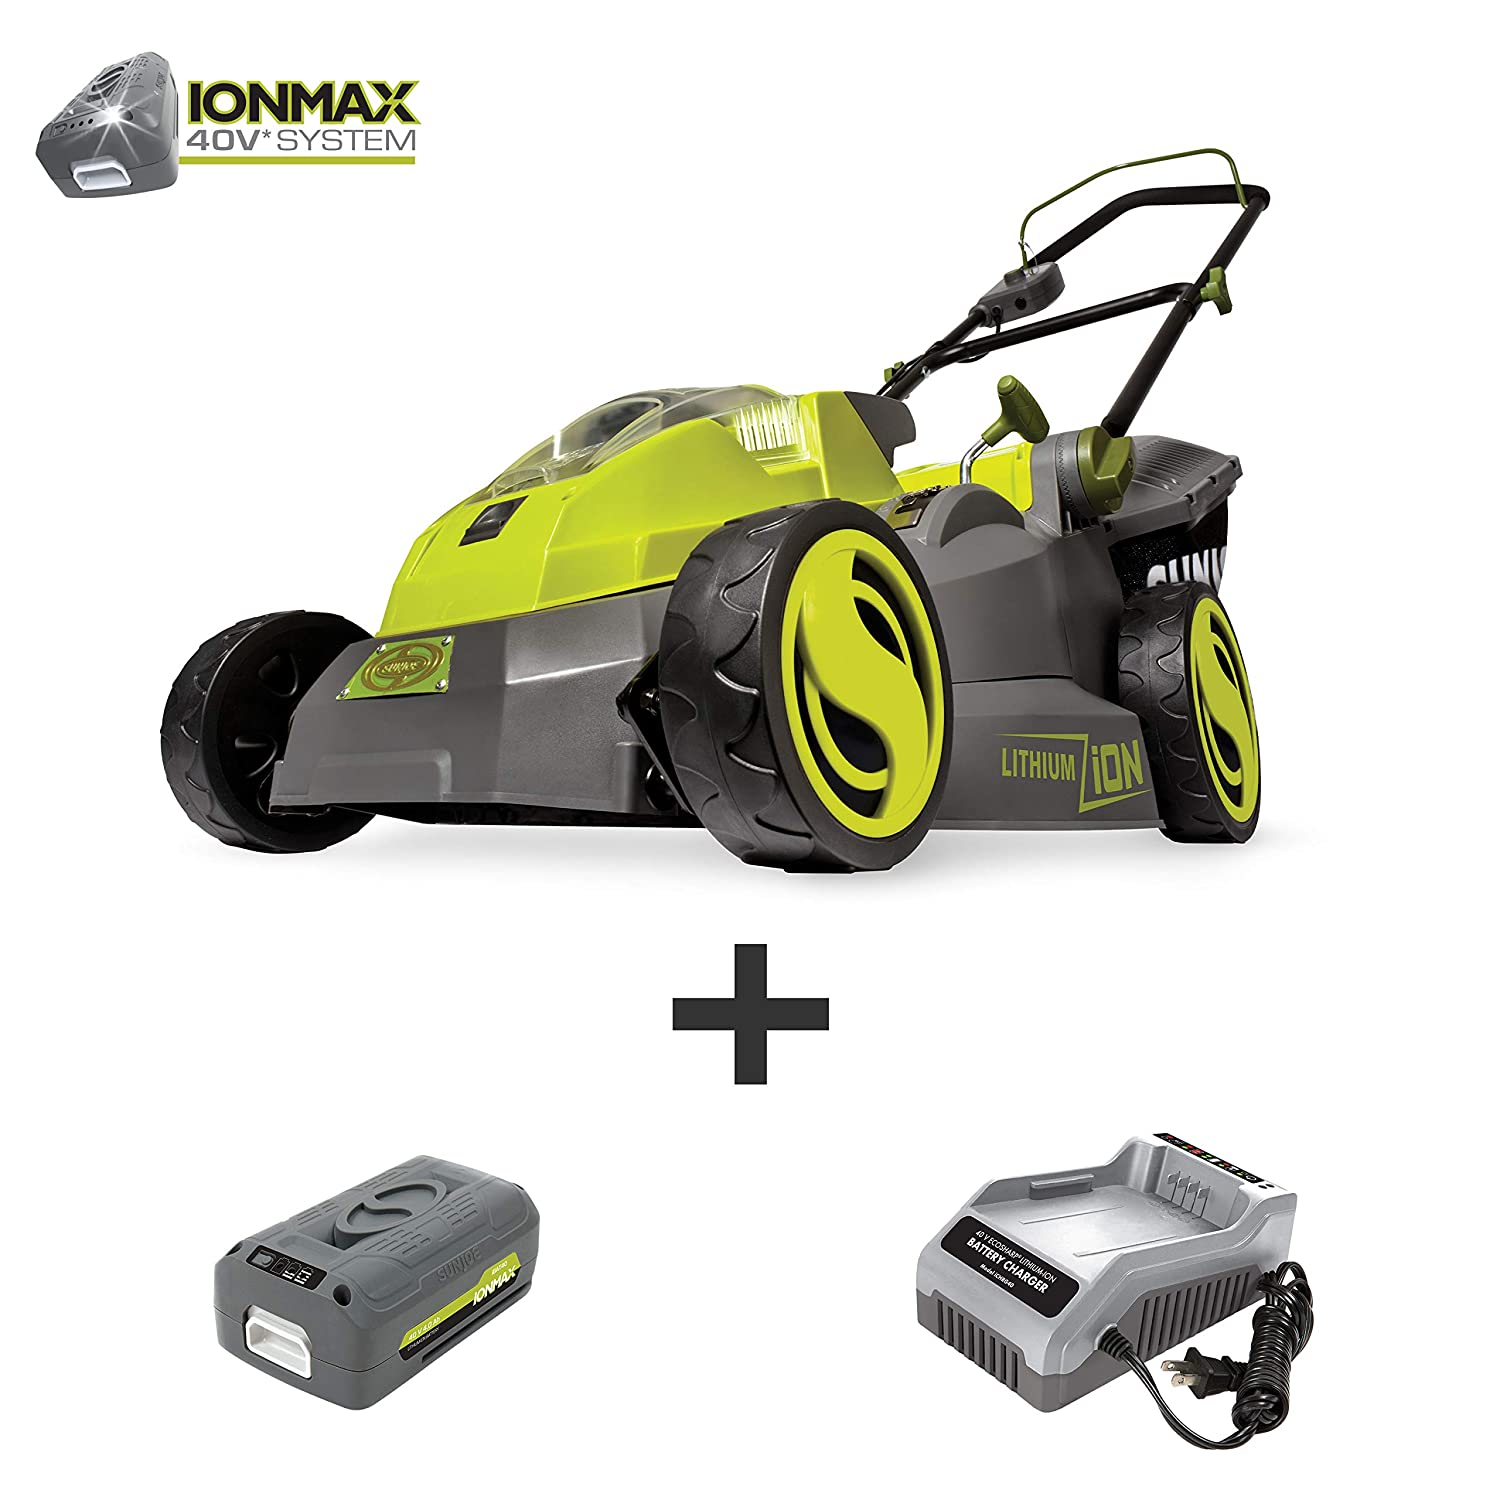 Sun Joe iON16LM 40-Volt 16-Inch Brushless Cordless Lawn Mower, Kit w 4.0-Ah Battery Quick Charger